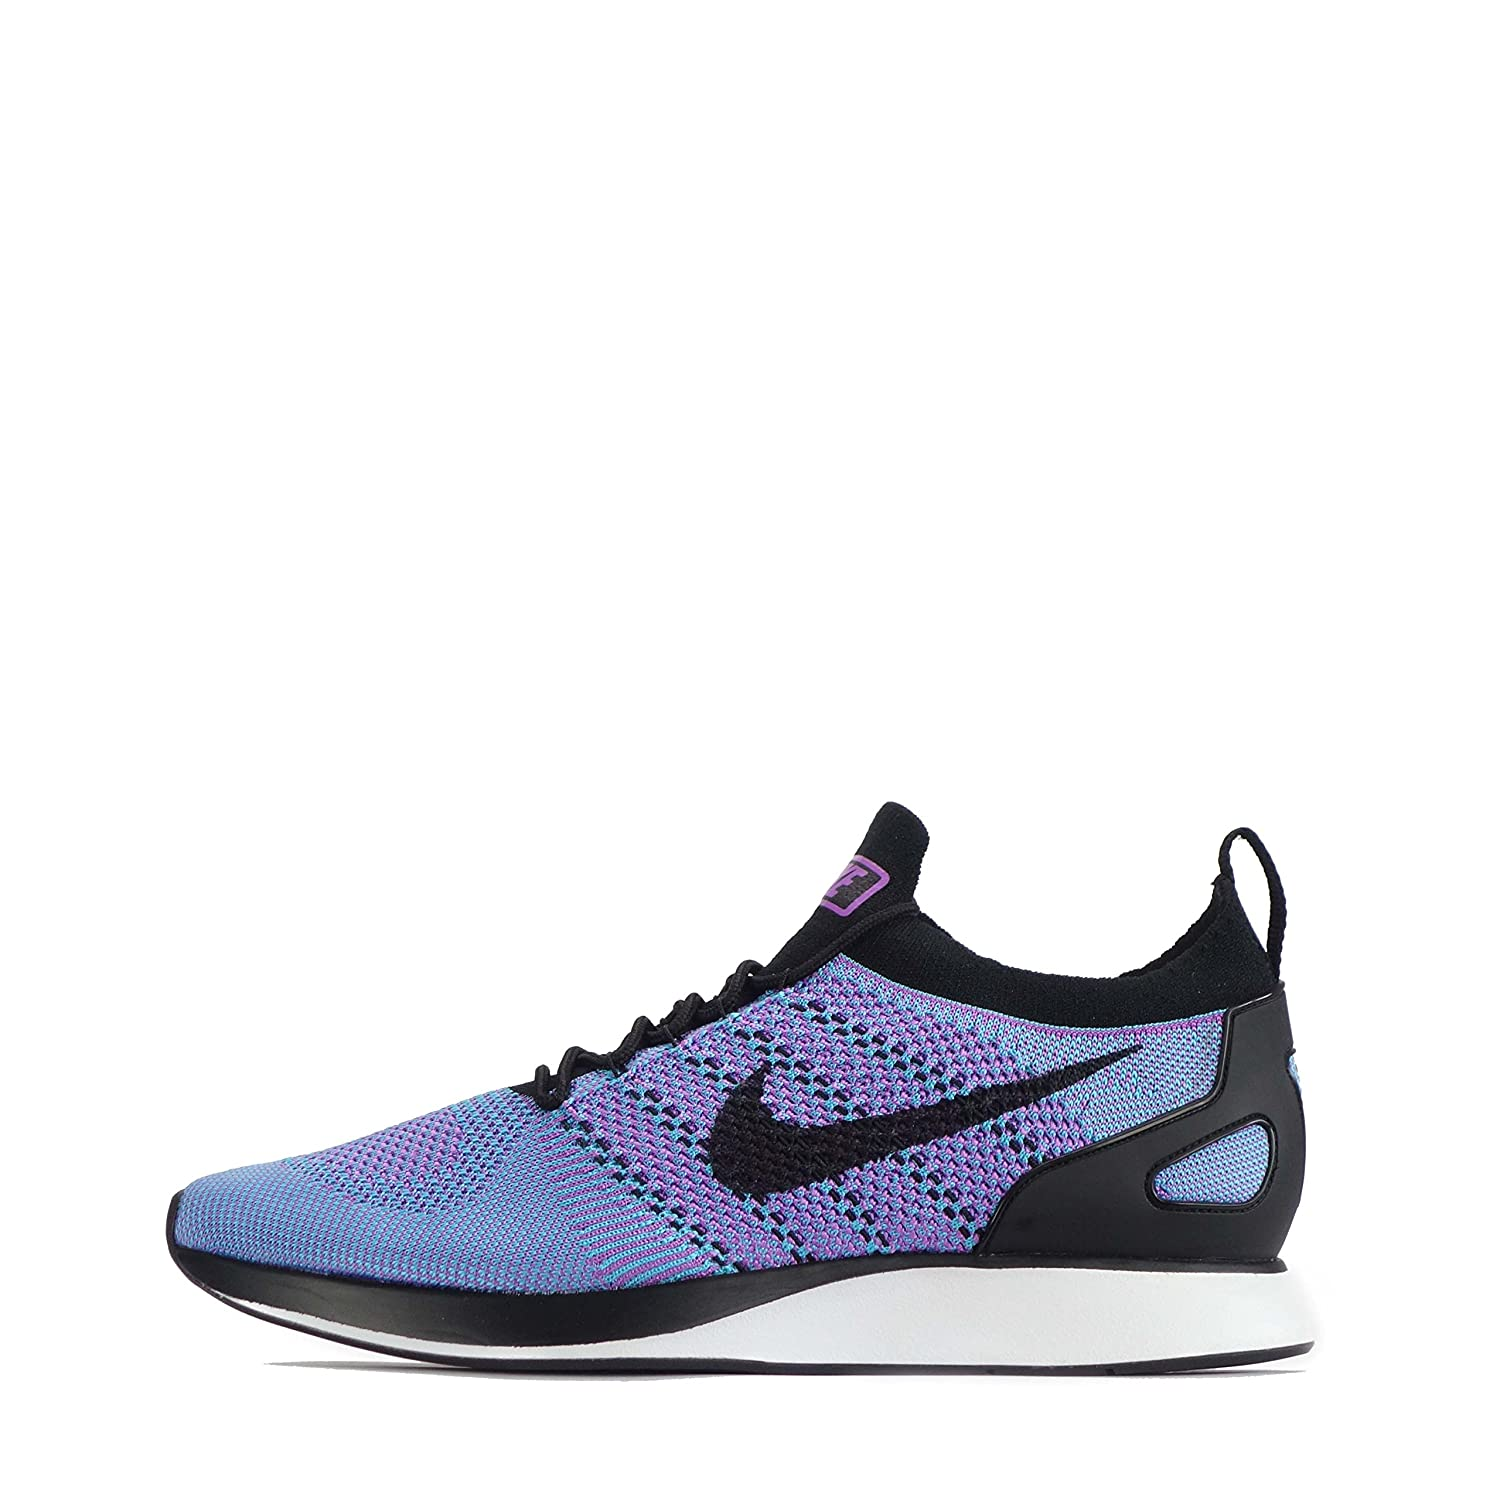 Nike Women's Free Rn Flyknit 2017 Running Shoes B004899726 12 D(M) US|Bright Violet Black 500